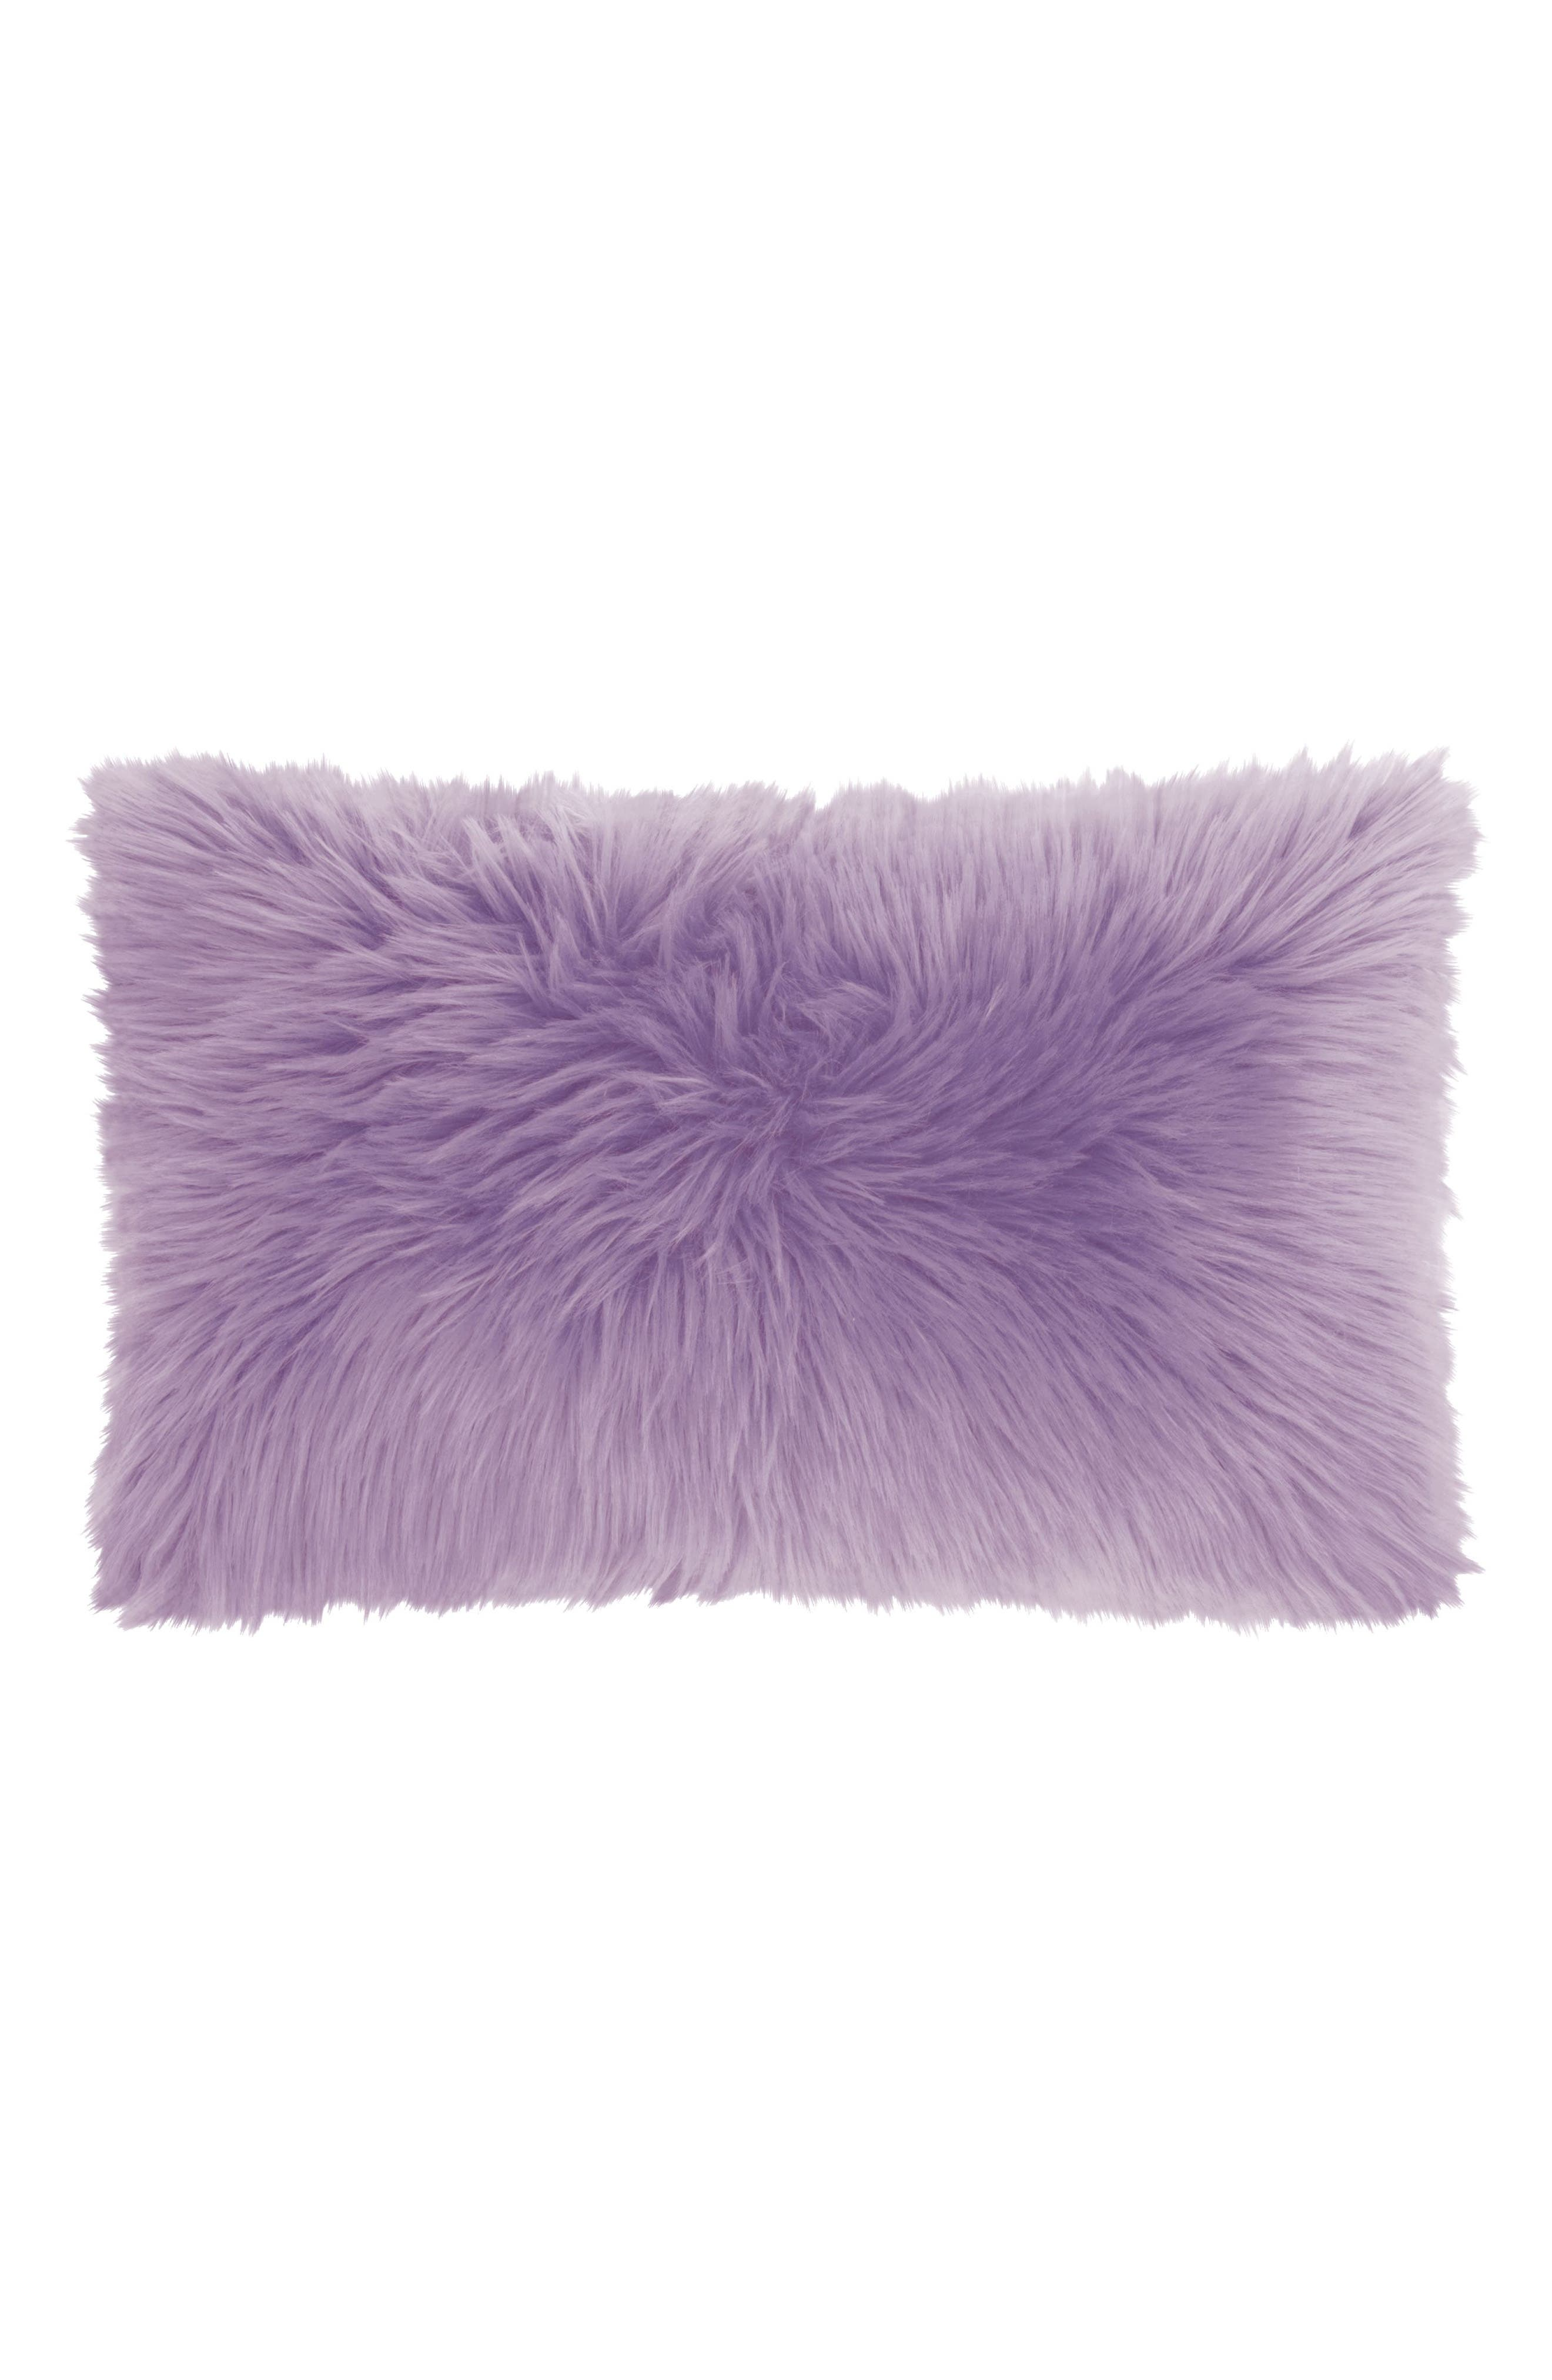 Faux Fur Pillow,                         Main,                         color, 540